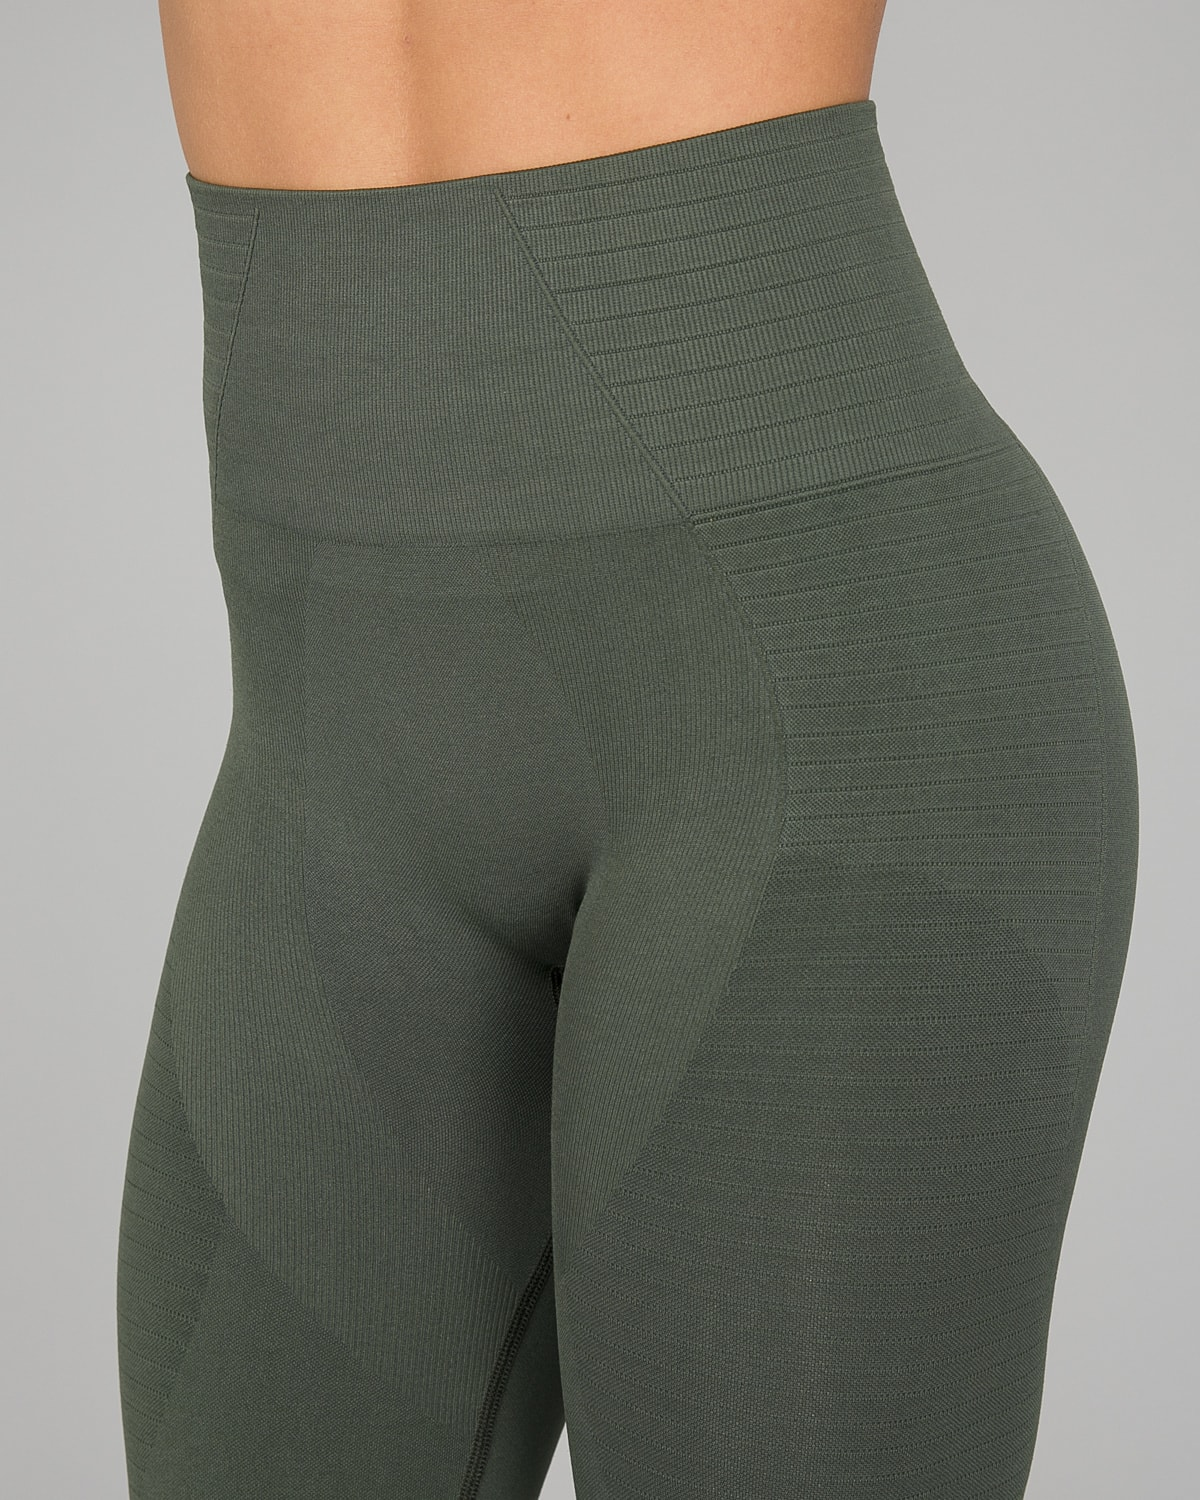 Jerf Gela 2.0 tights dark green11